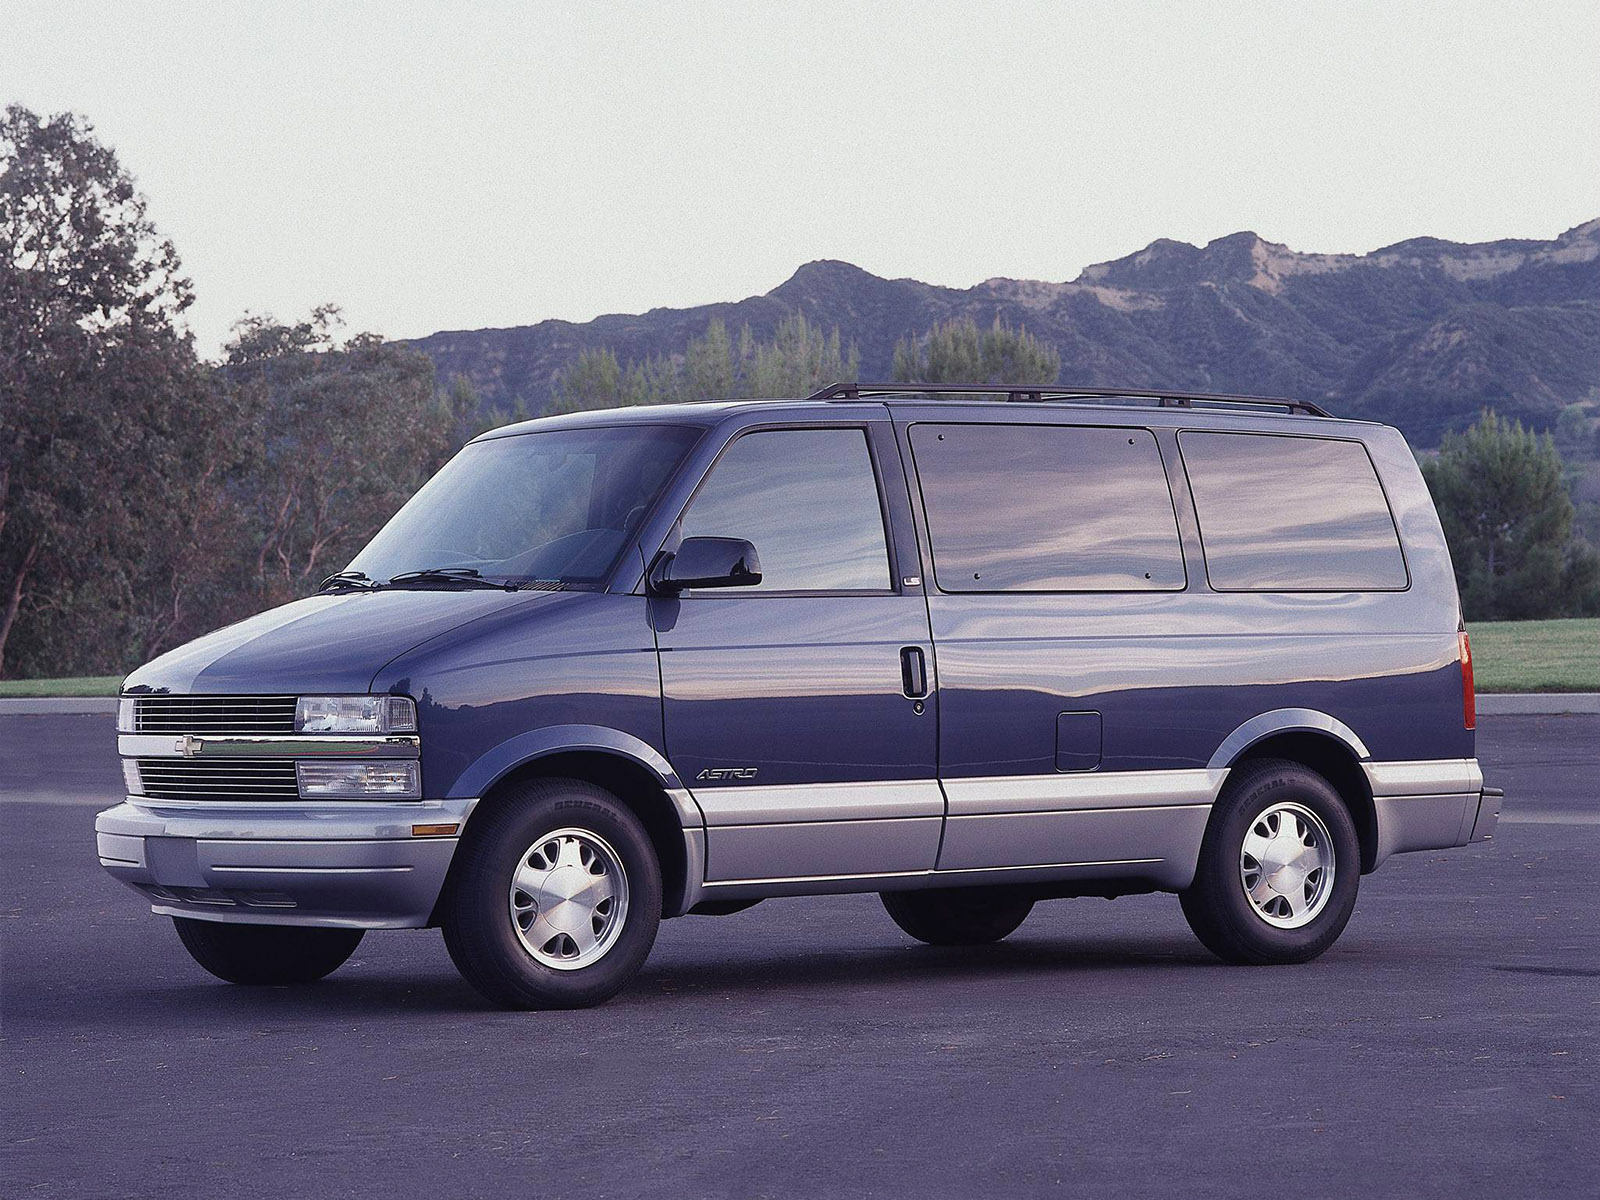 Chevrolet Astro Van photo 45684